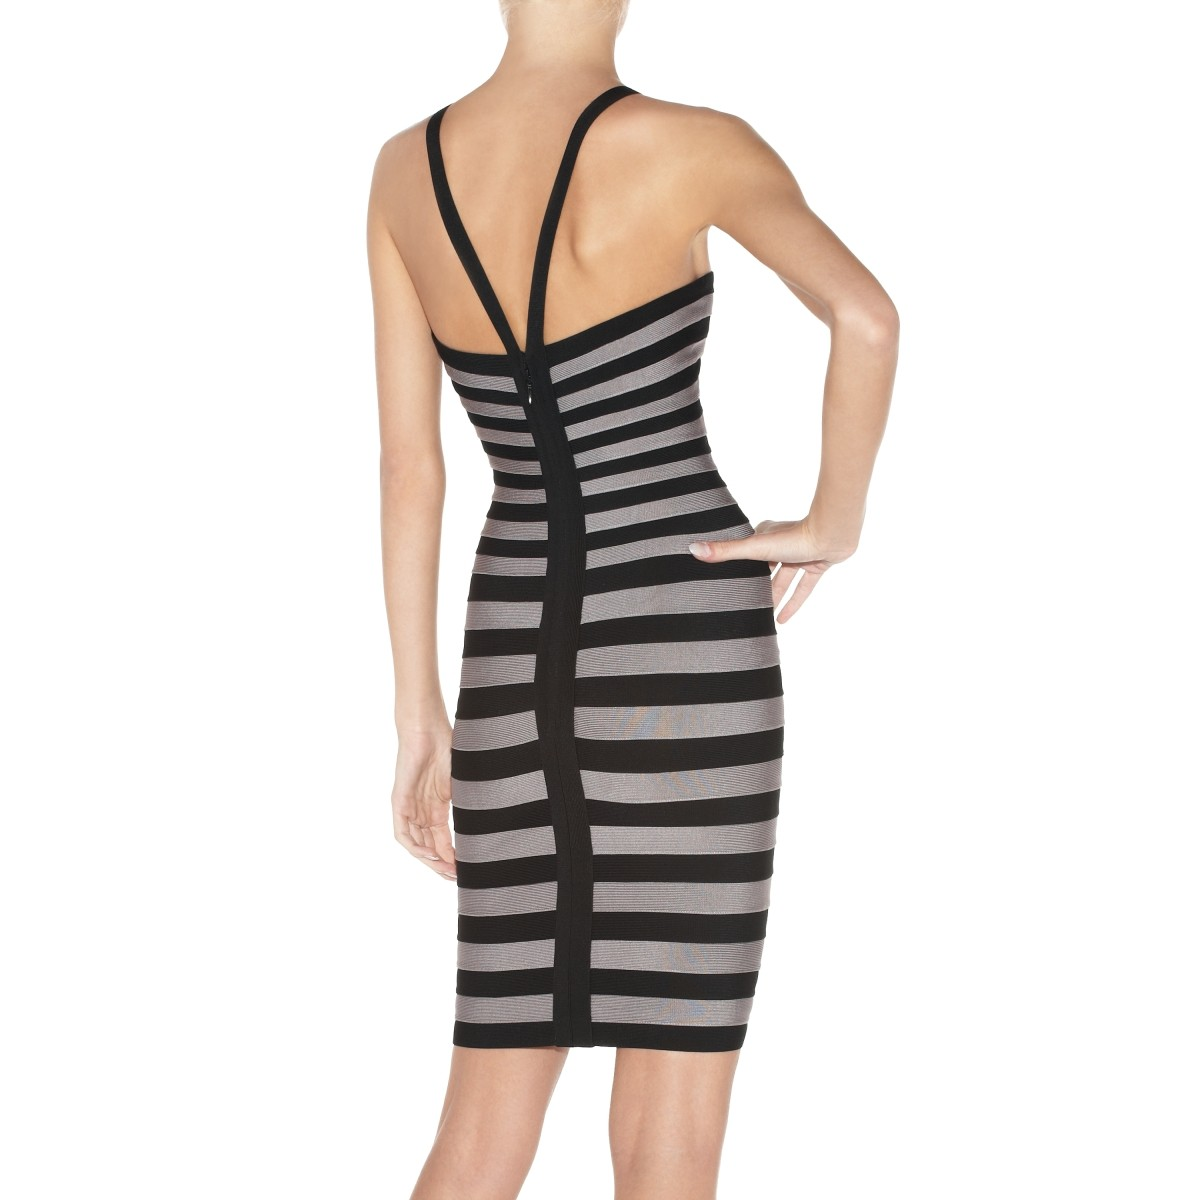 Herve Leger Grey And Black Zindzi Striped Bandage Dres